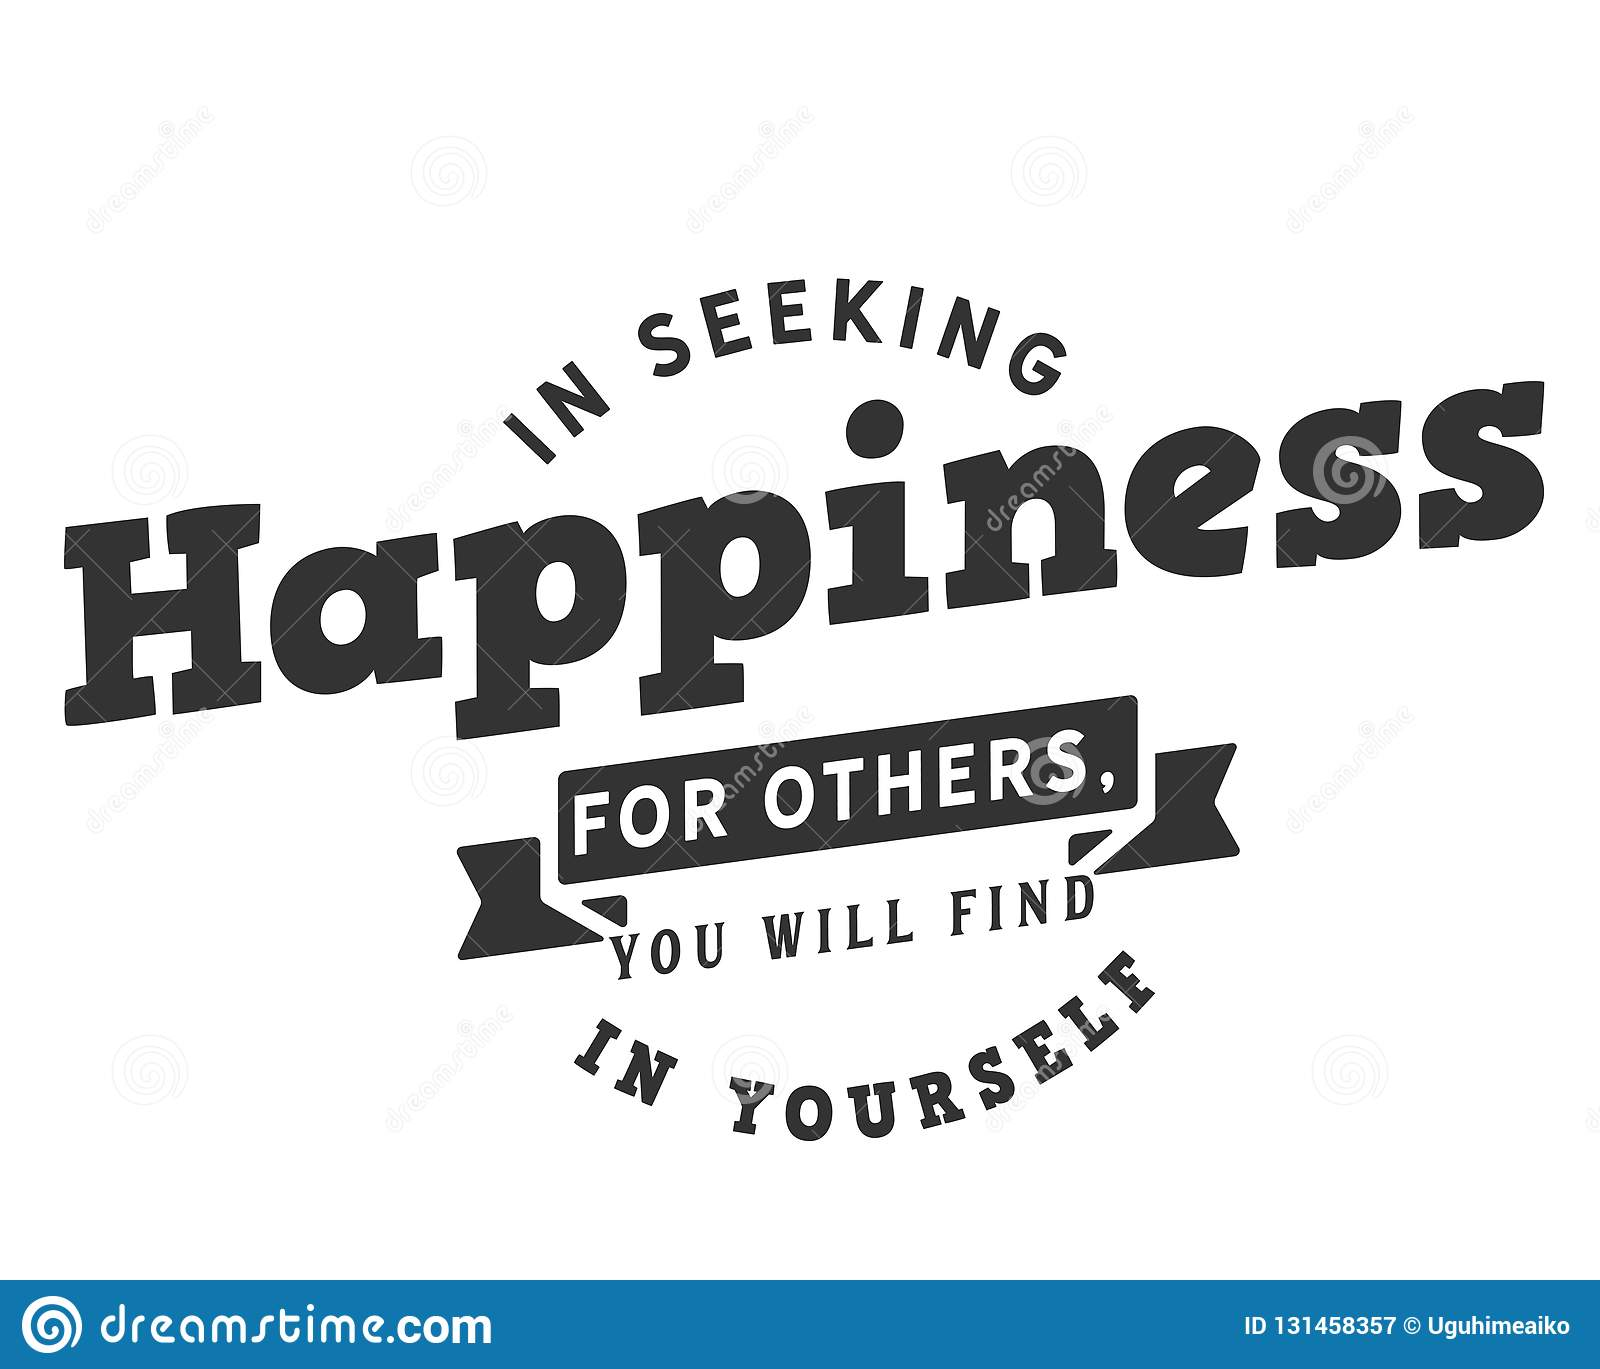 in seeking happiness for others you will it in yourself